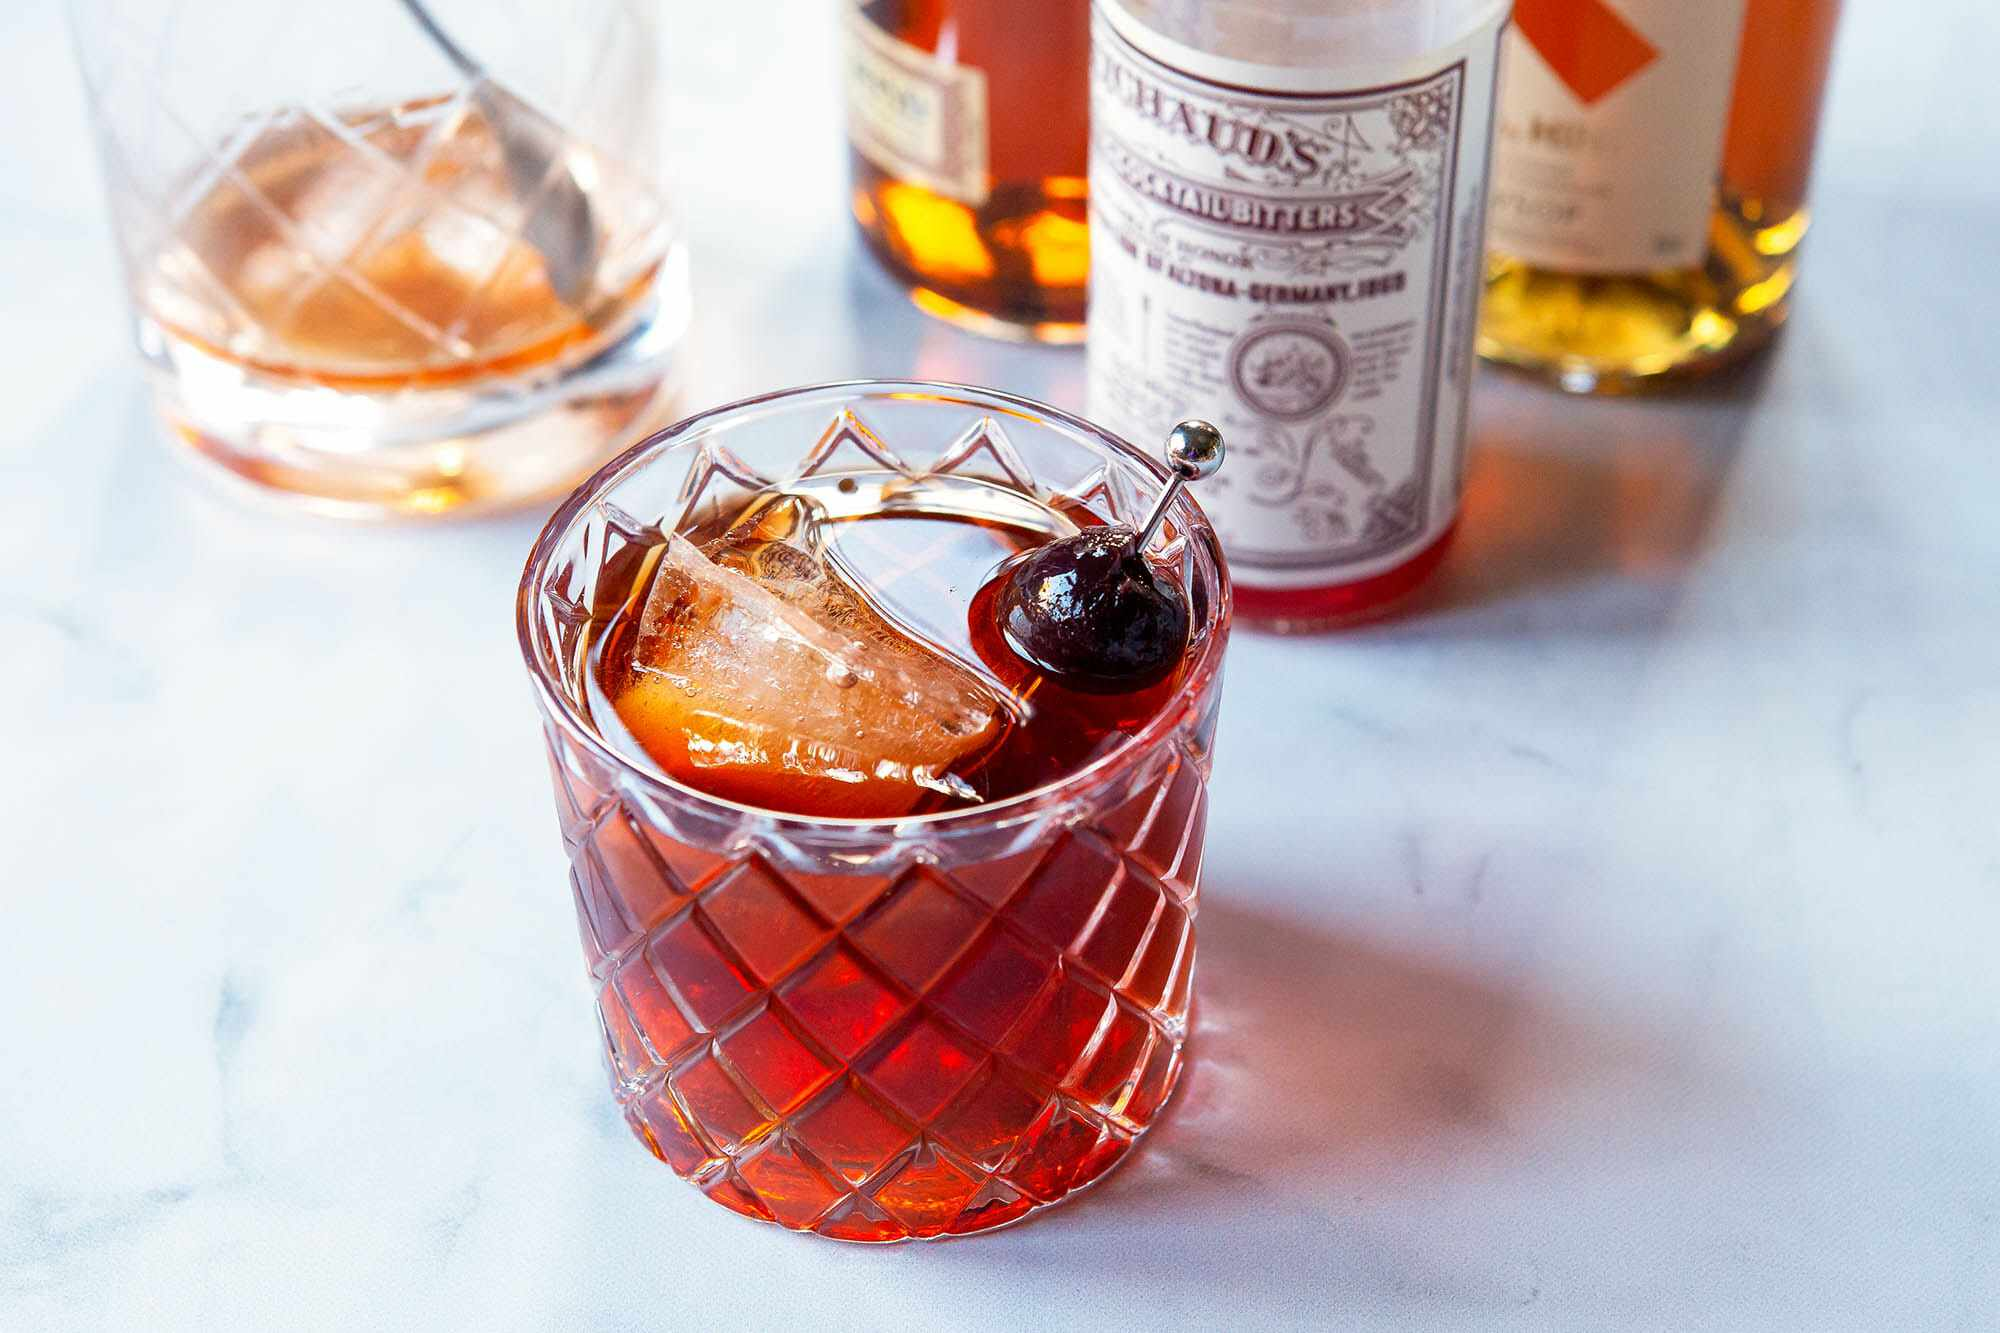 Vieux carre in a whiskey glass with ingredients to make the cocktail behind it.